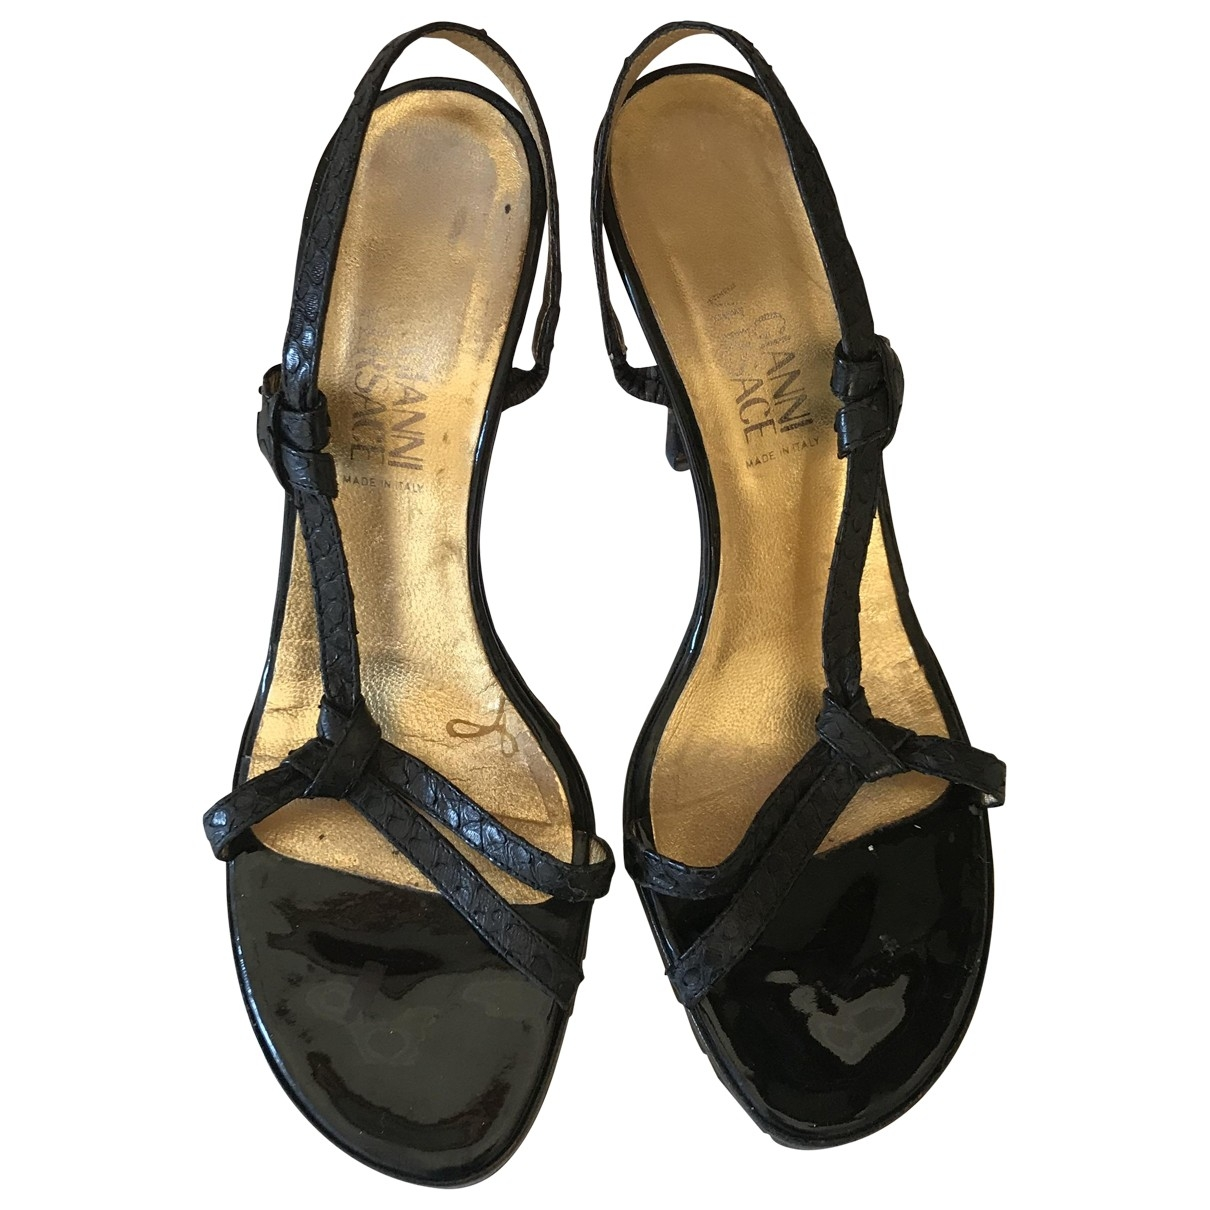 Gianni Versace \N Black Exotic leathers Sandals for Women 36.5 EU